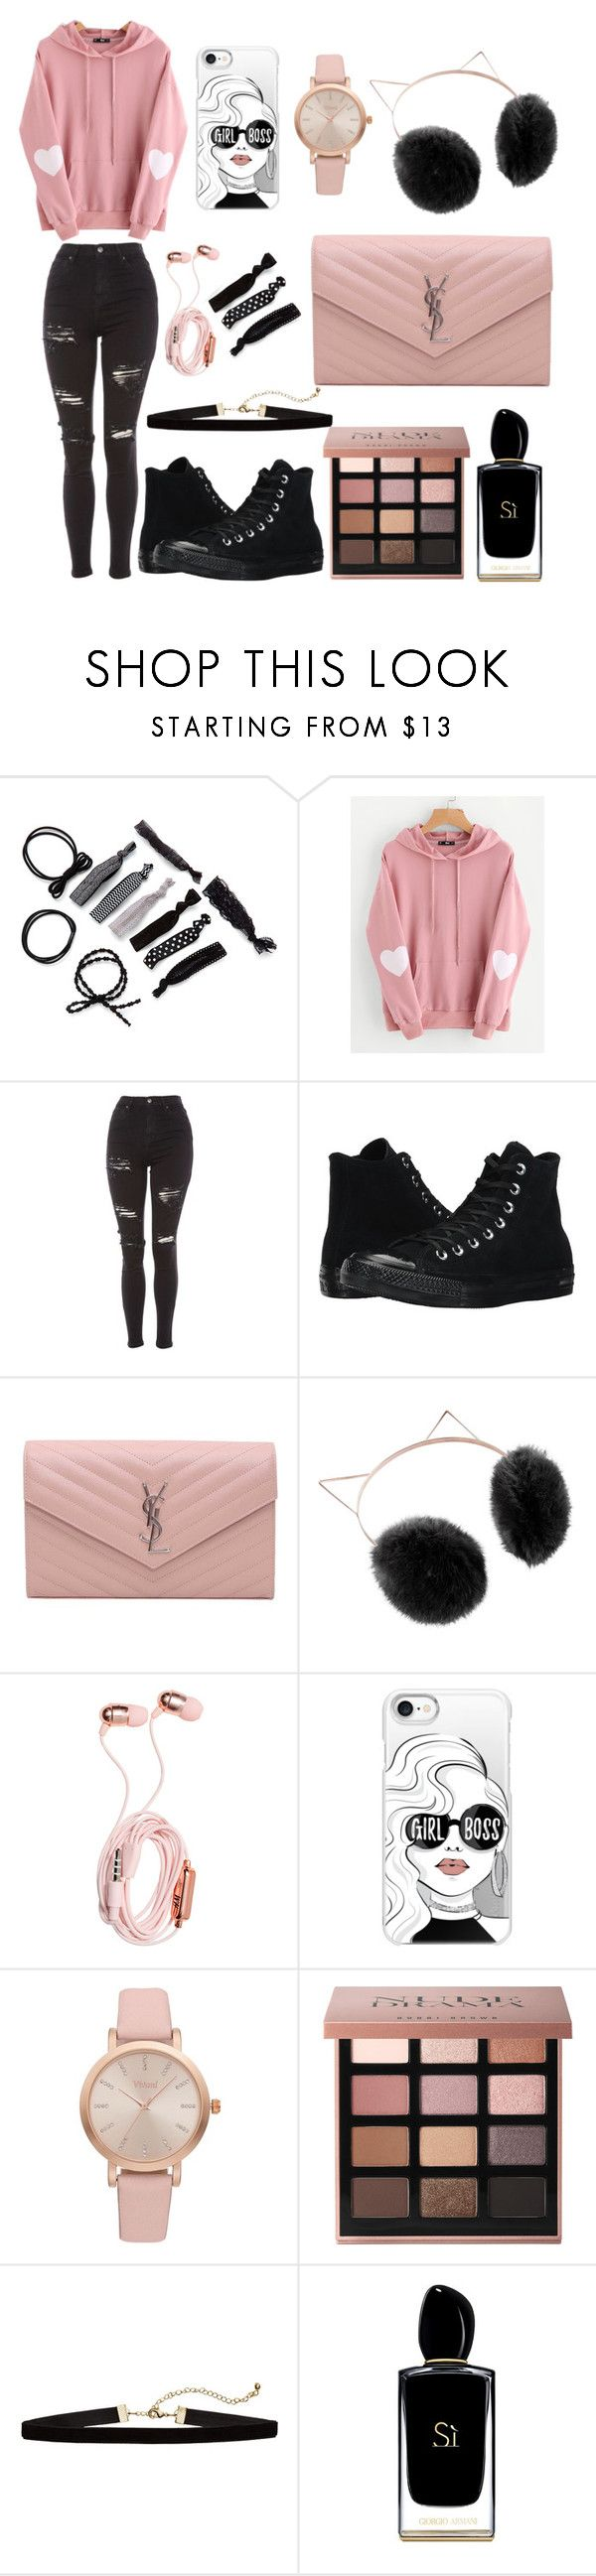 """""""Girl Boss"""" by mirjamke ❤ liked on Polyvore featuring WithChic, Topshop, Converse, Yves Saint Laurent, LC Lauren Conrad, Casetify, Vivani, Bobbi Brown Cosmetics and Giorgio Armani"""